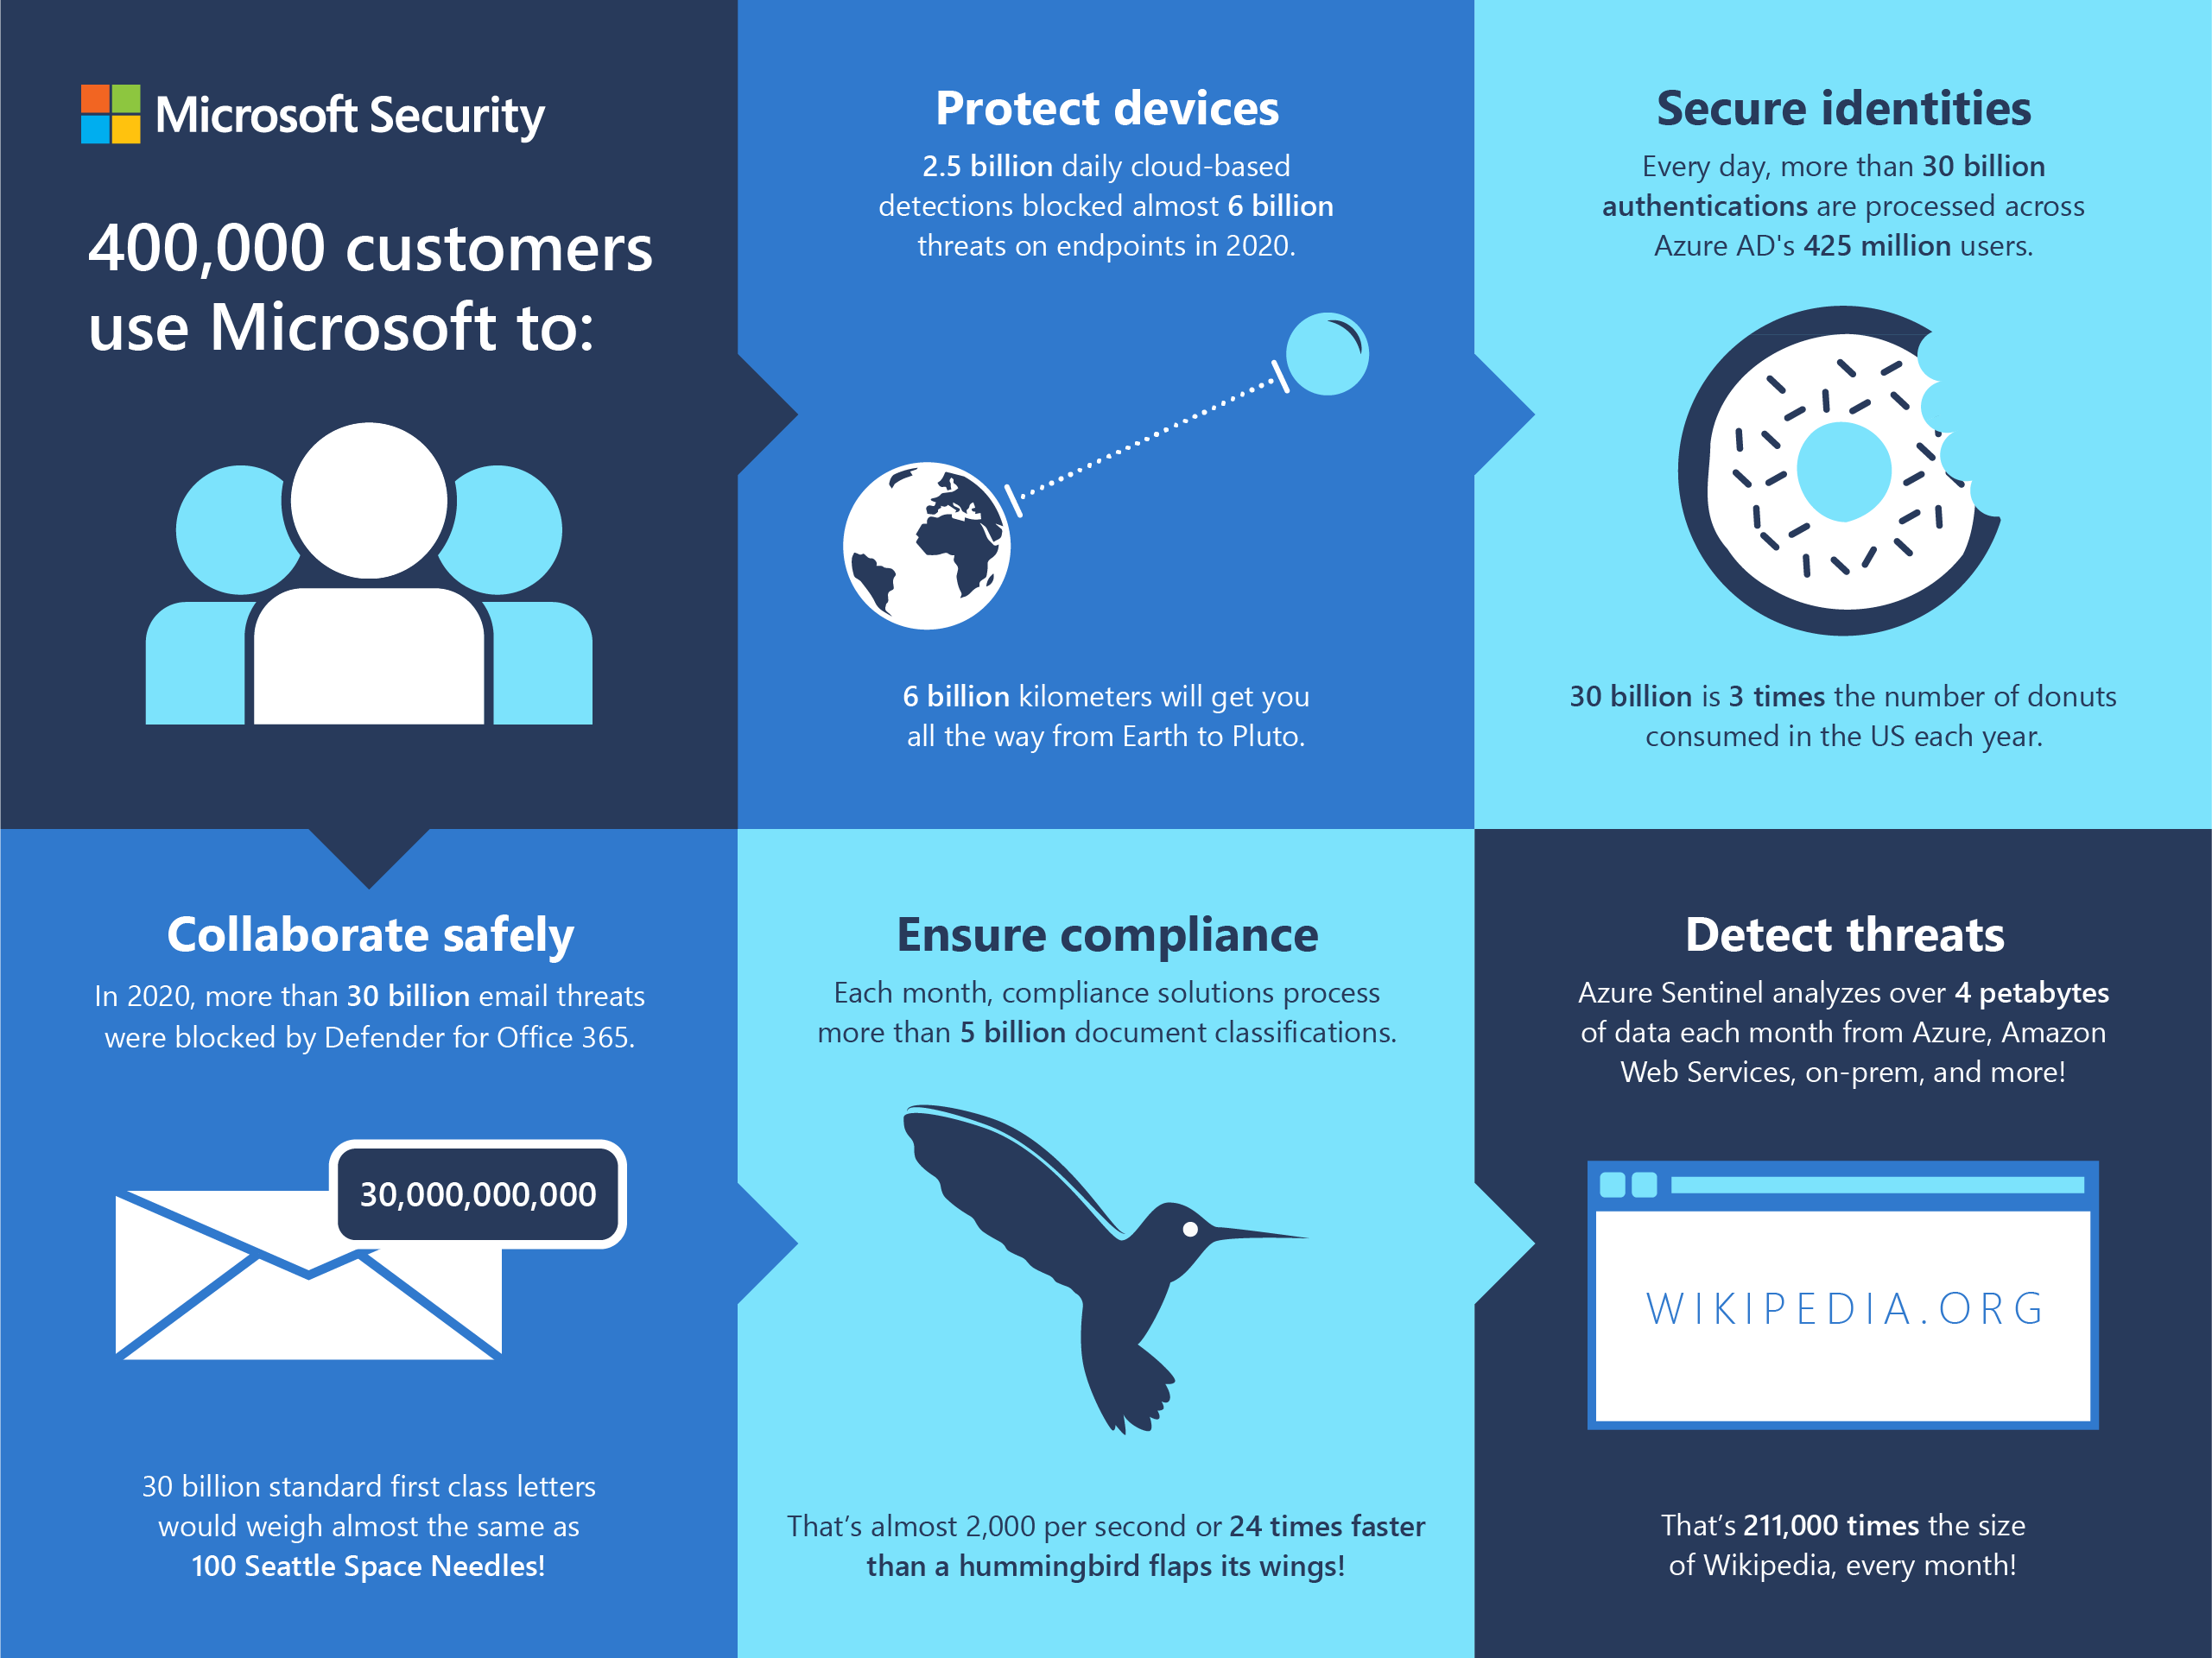 Infographic that describes how Microsoft protects devices, secures identities, ensures compliance, and detects threats.